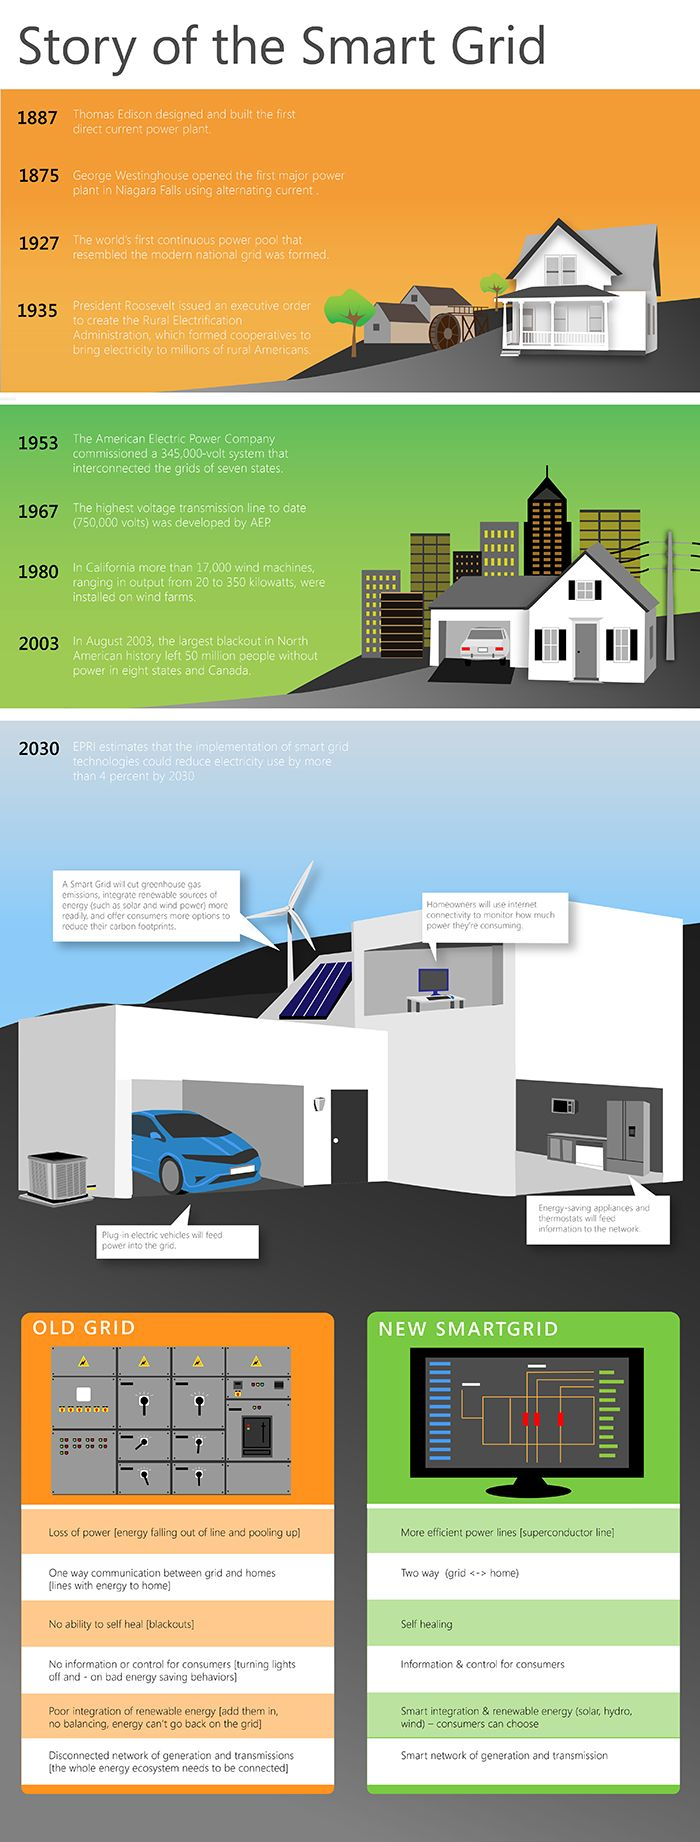 Story of the Smart Grid infographic